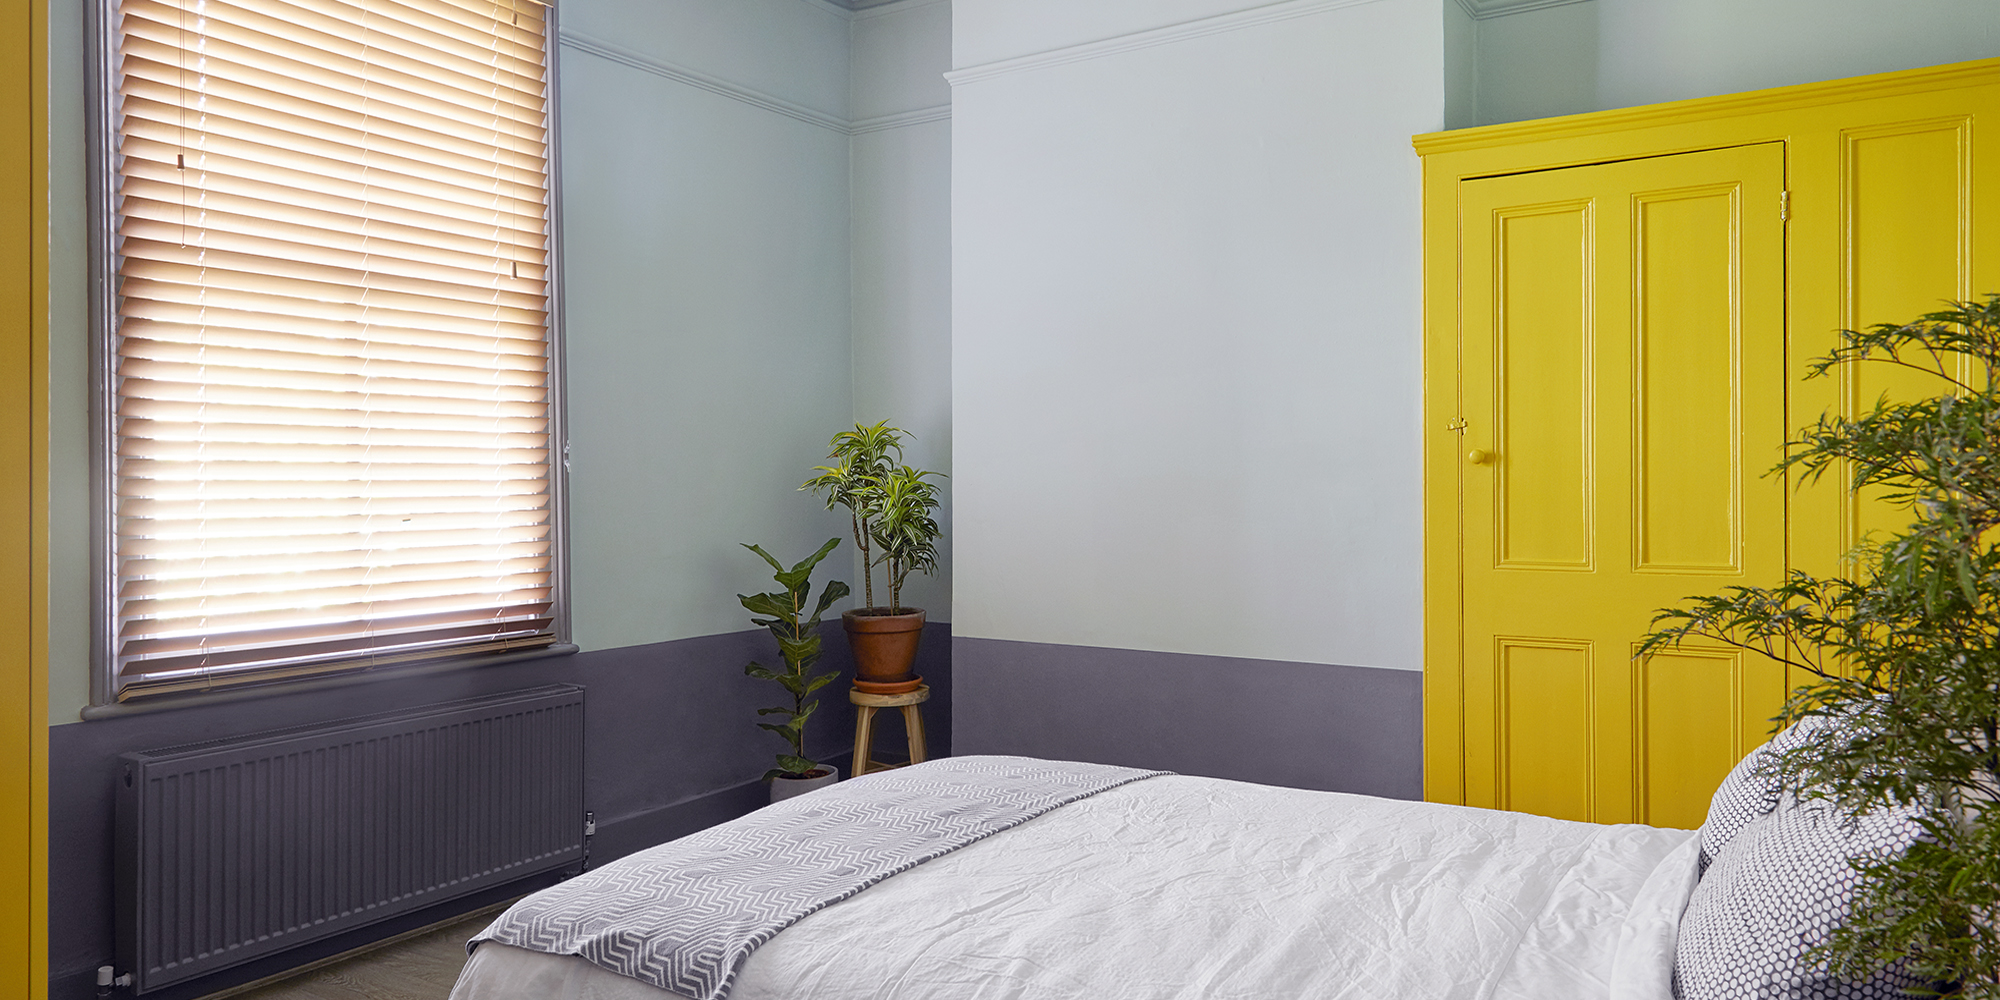 House of Sylphina London interior design - restaurant design, hotel design, shop design, retail design, hospitality design and workspace design. Bold yellow wardrobes in a neutral bedroom